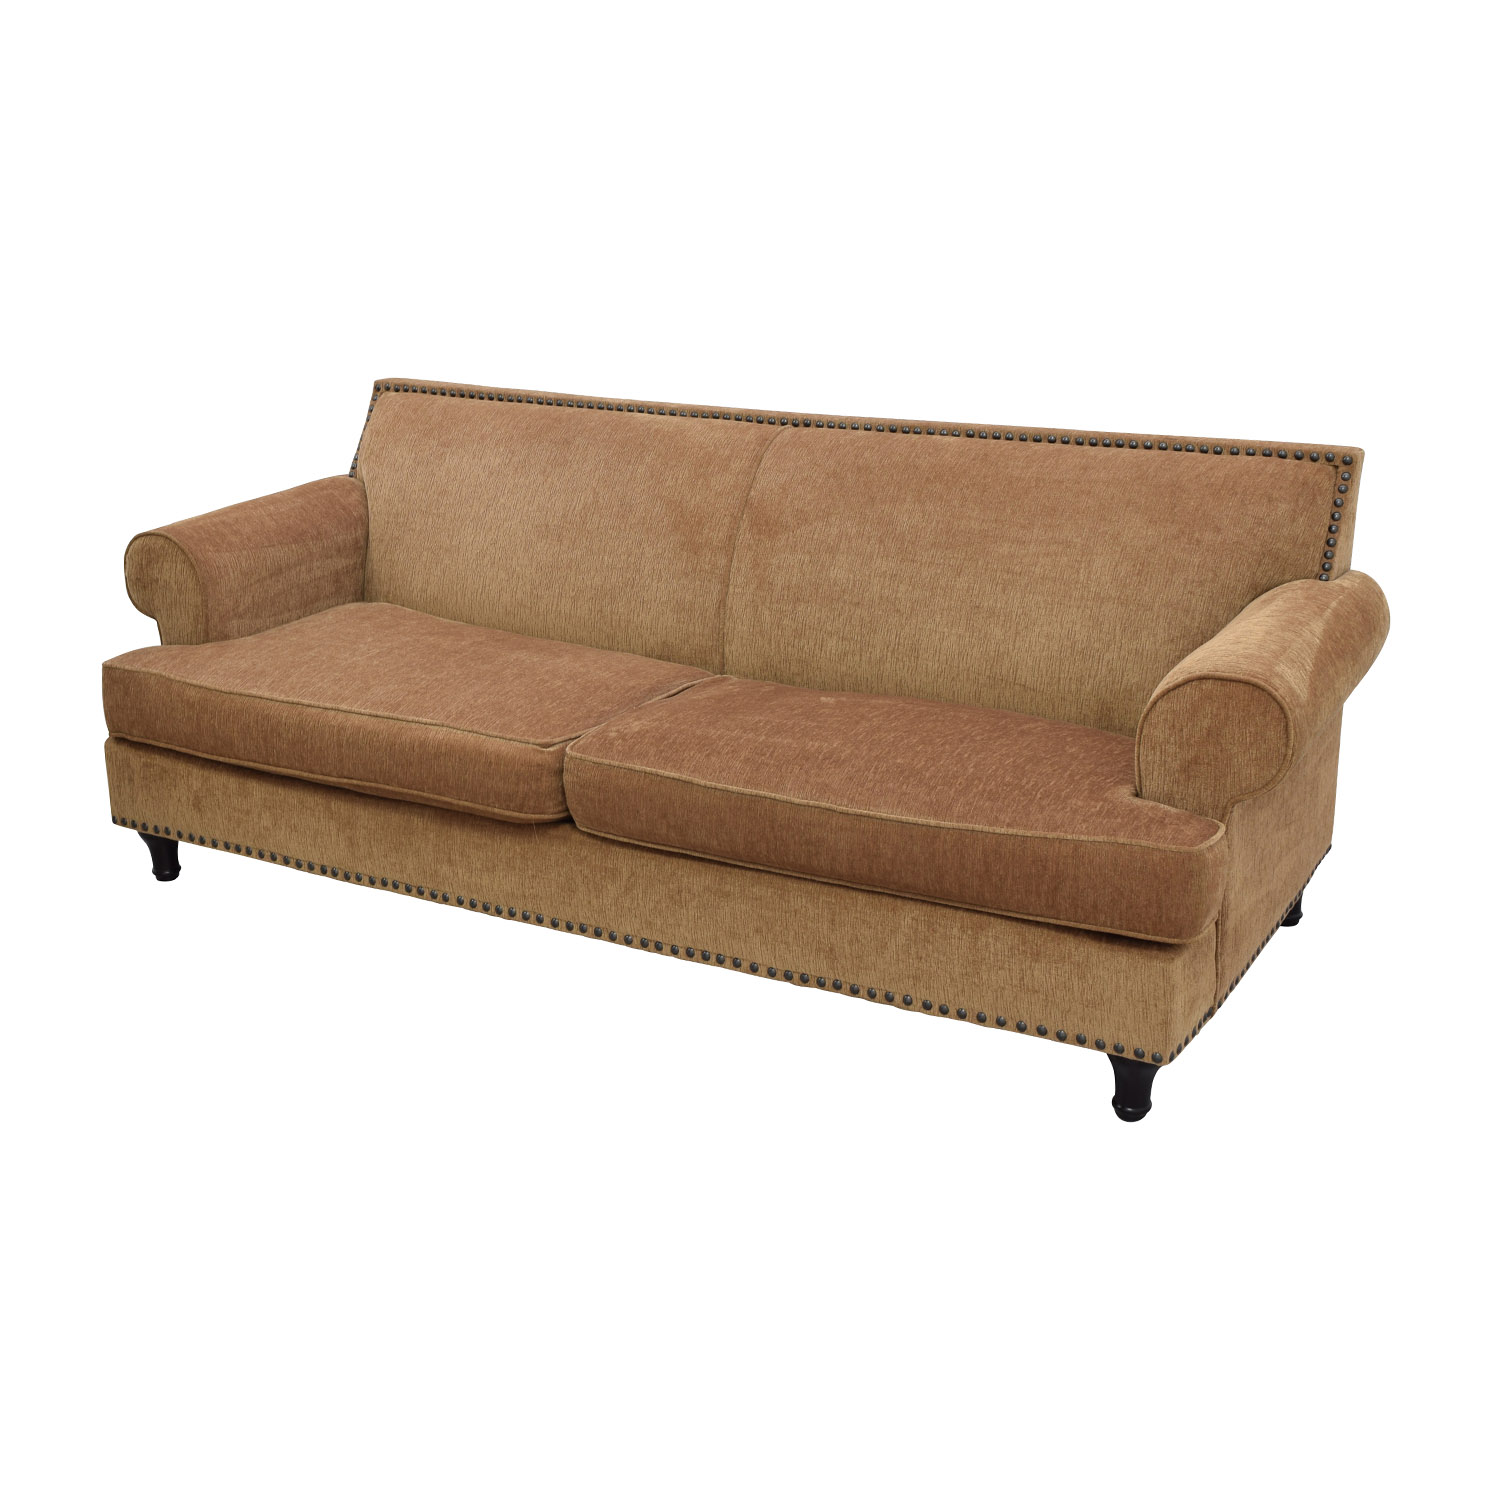 Pier 1 Imports Pier 1 Imports Carmen Brown Sofa second hand